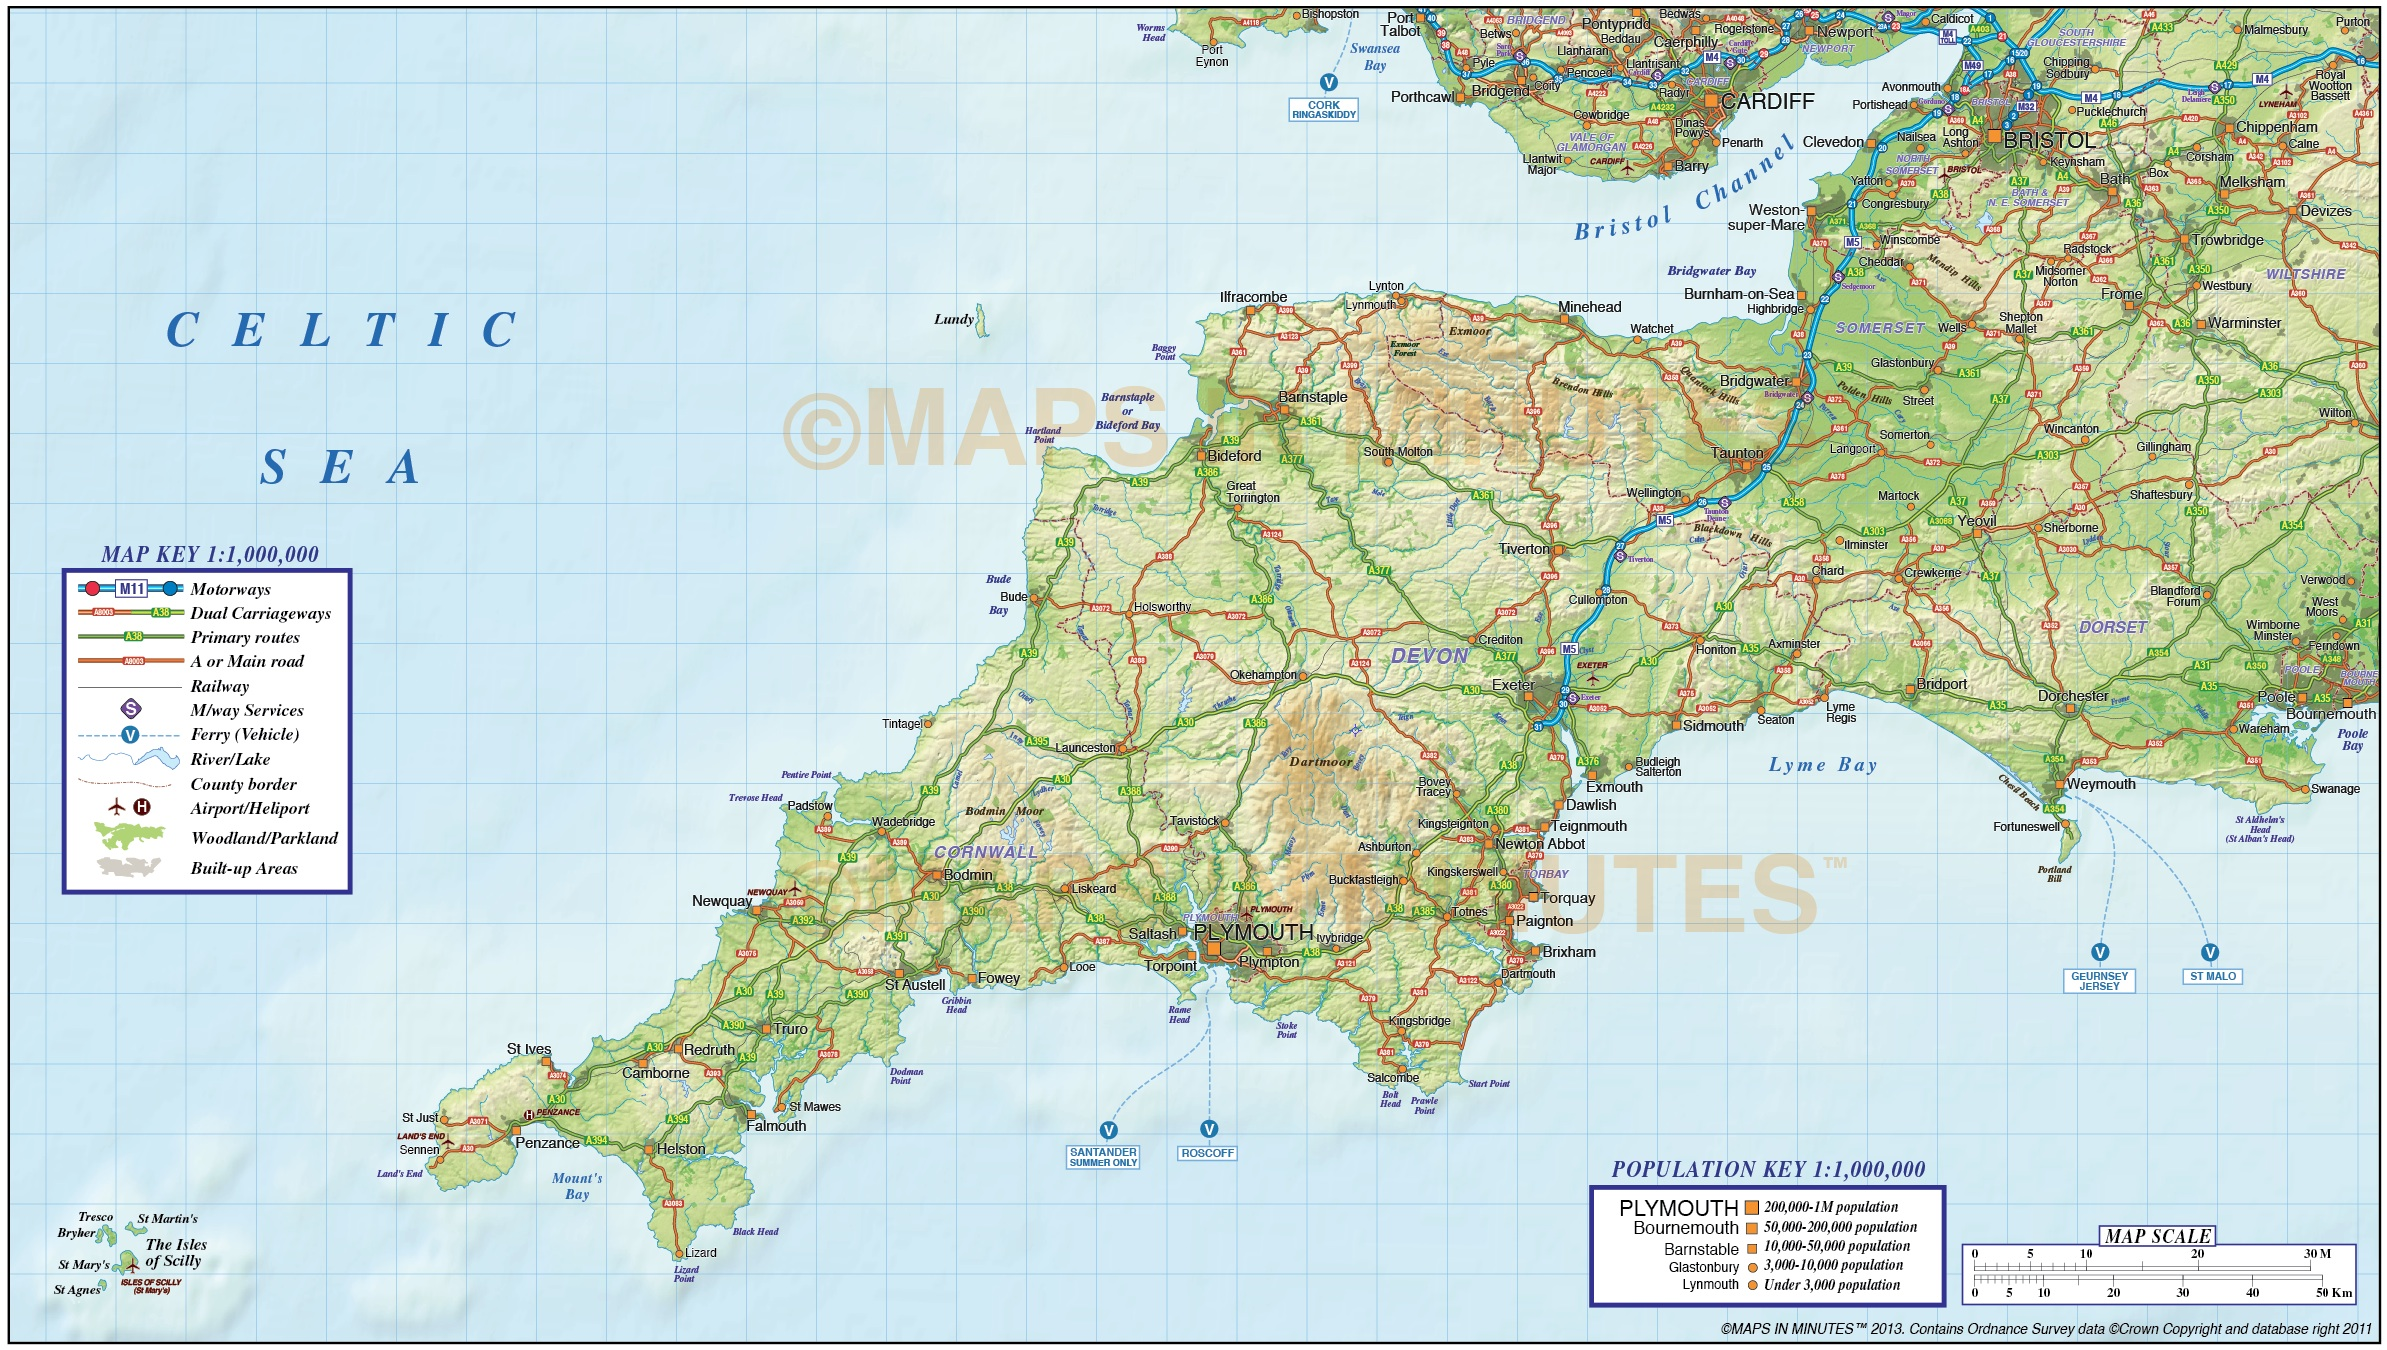 Map Of The South England.South West England County Road Rail Map With Regular Relief 1m